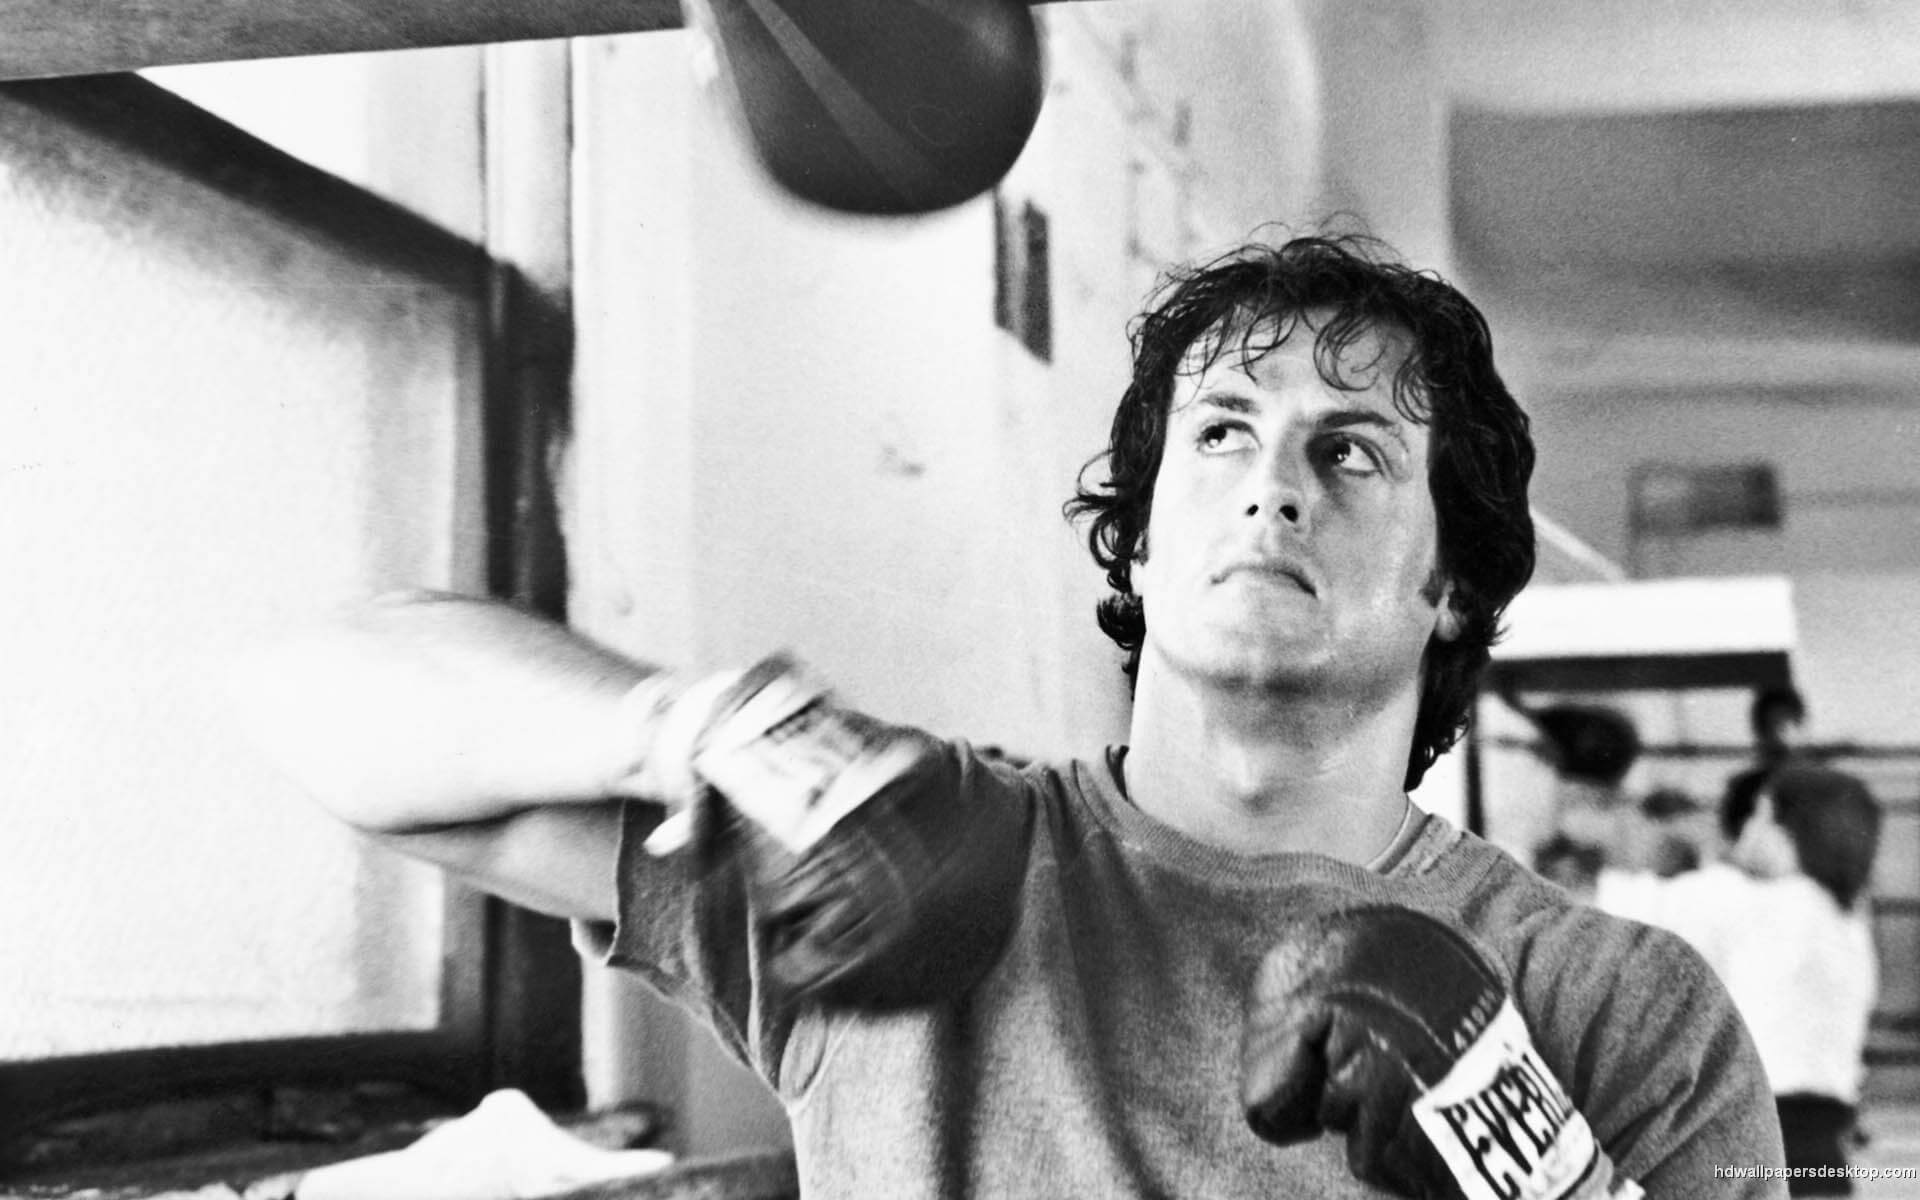 The Inspiring Story of How Sylvester Stallone Went After His Dreams